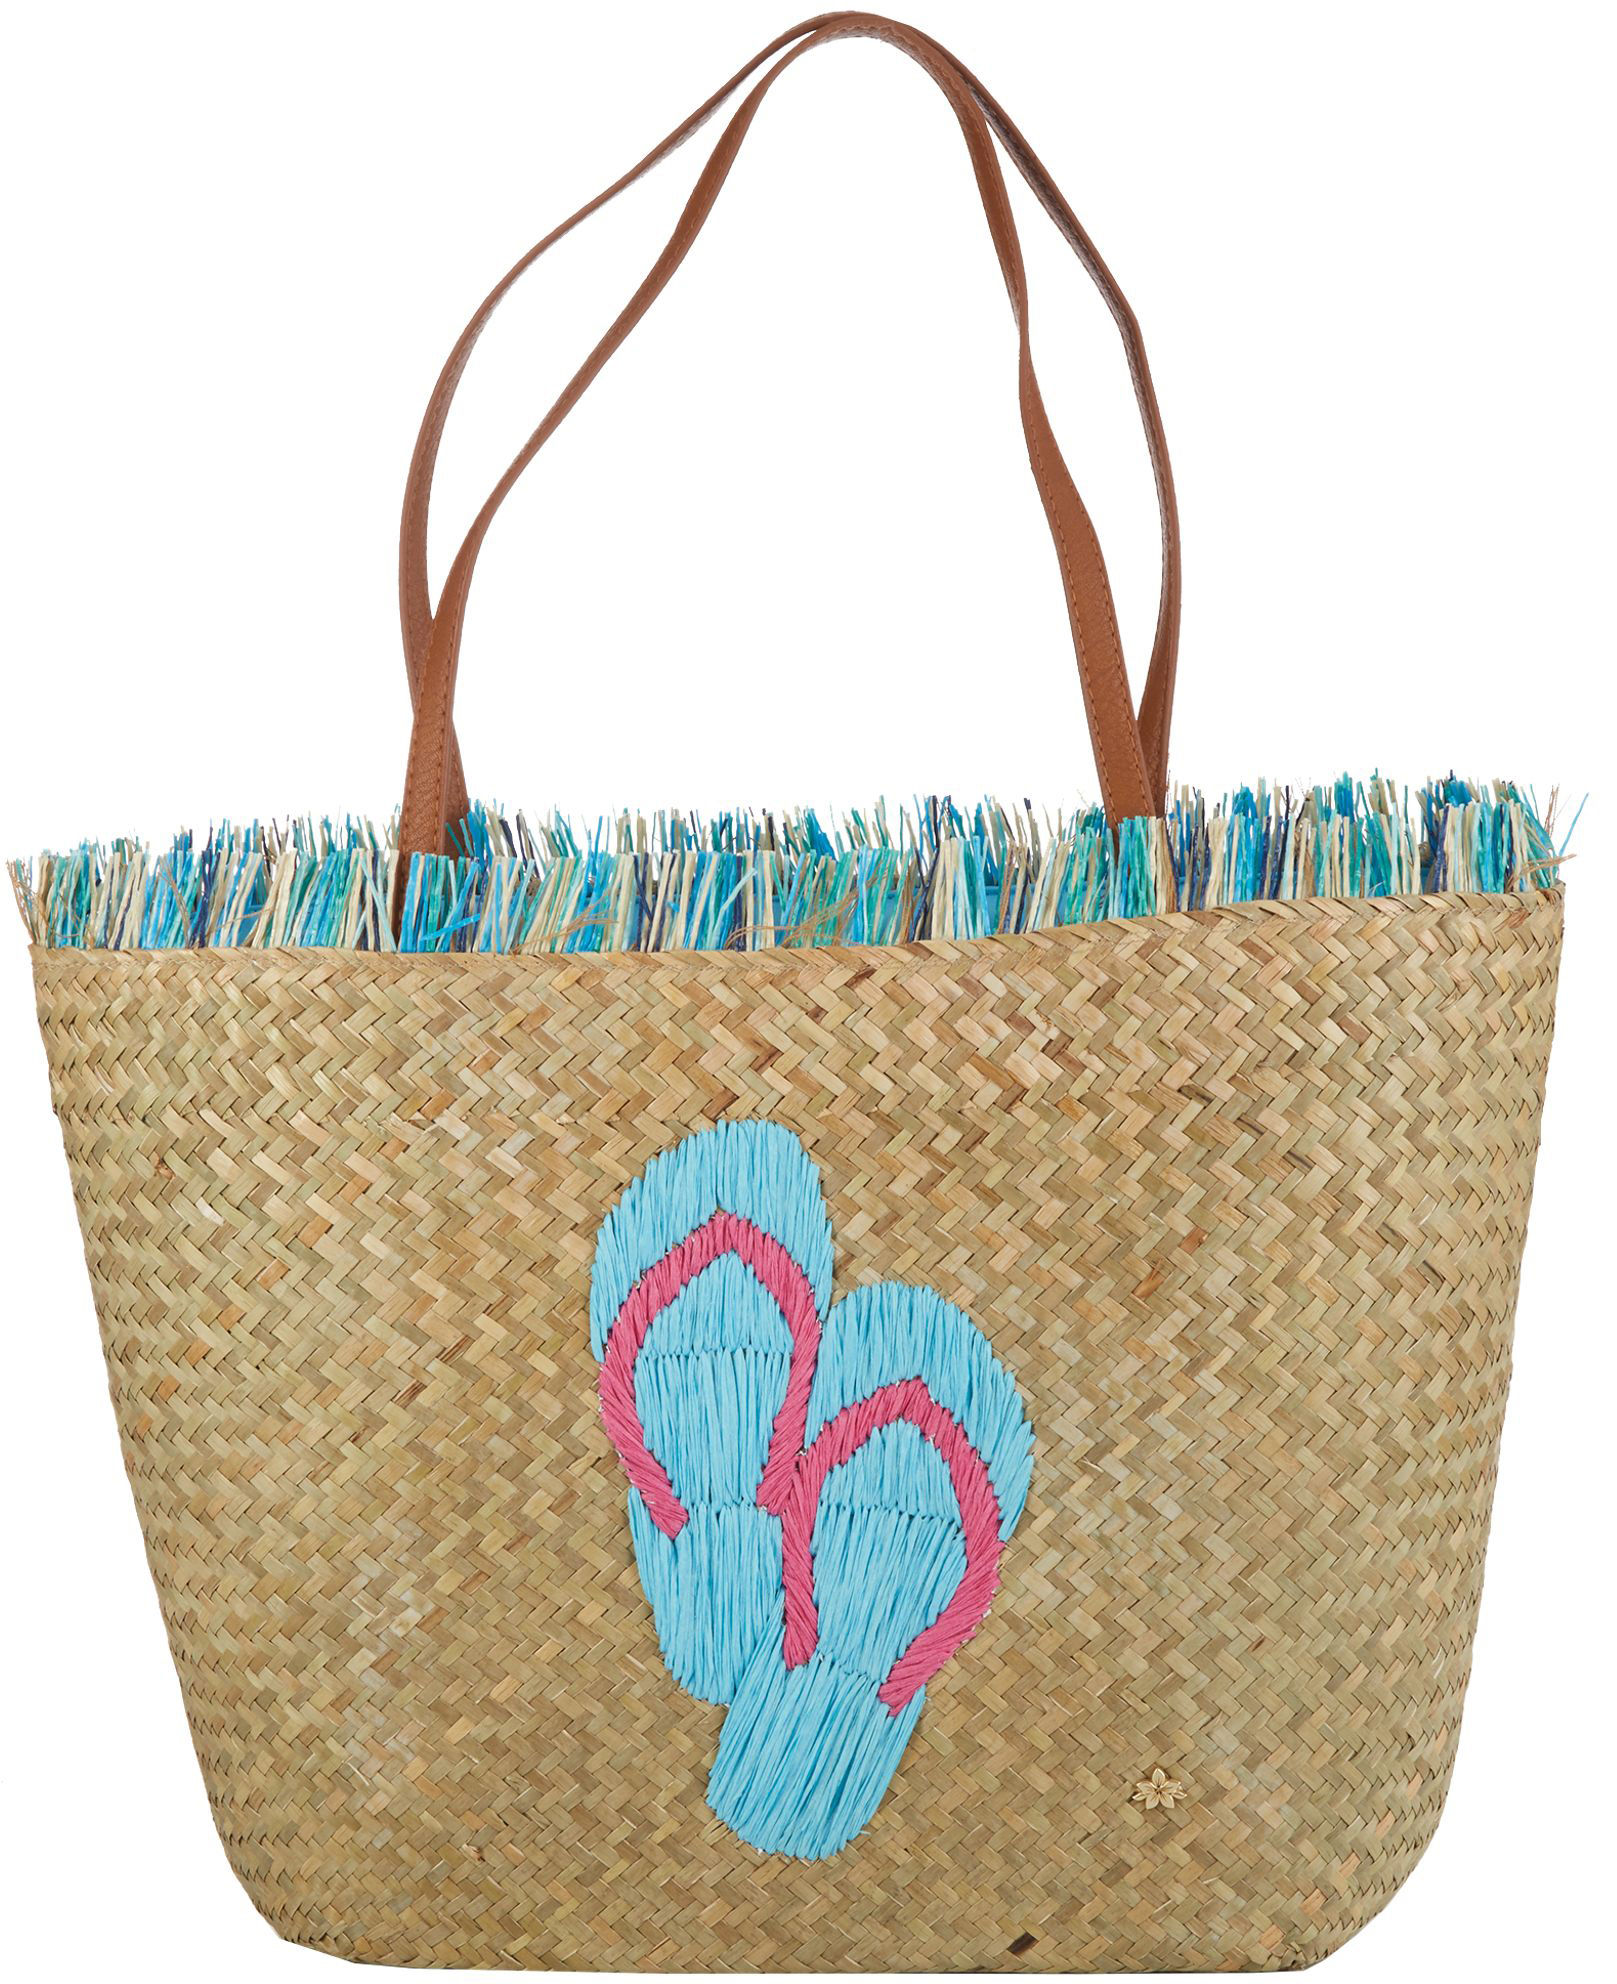 Image Is Loading Capelli Flip Flops Beach Bag Tote One Size